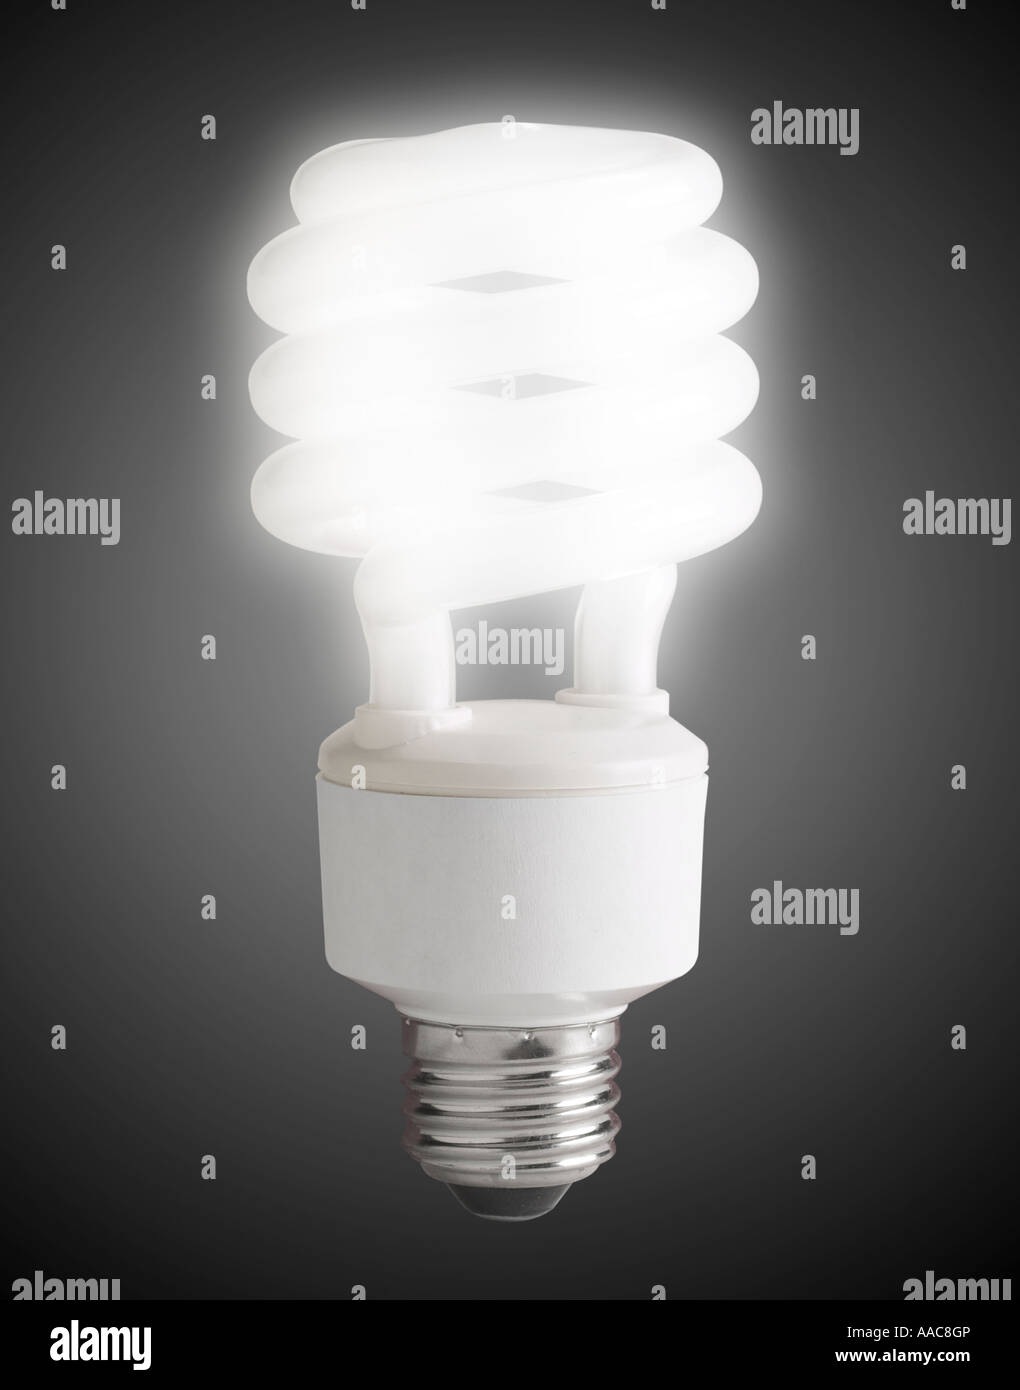 Compact Fluorescent Light Bulb Stock Photos  for glowing cfl bulb  55jwn